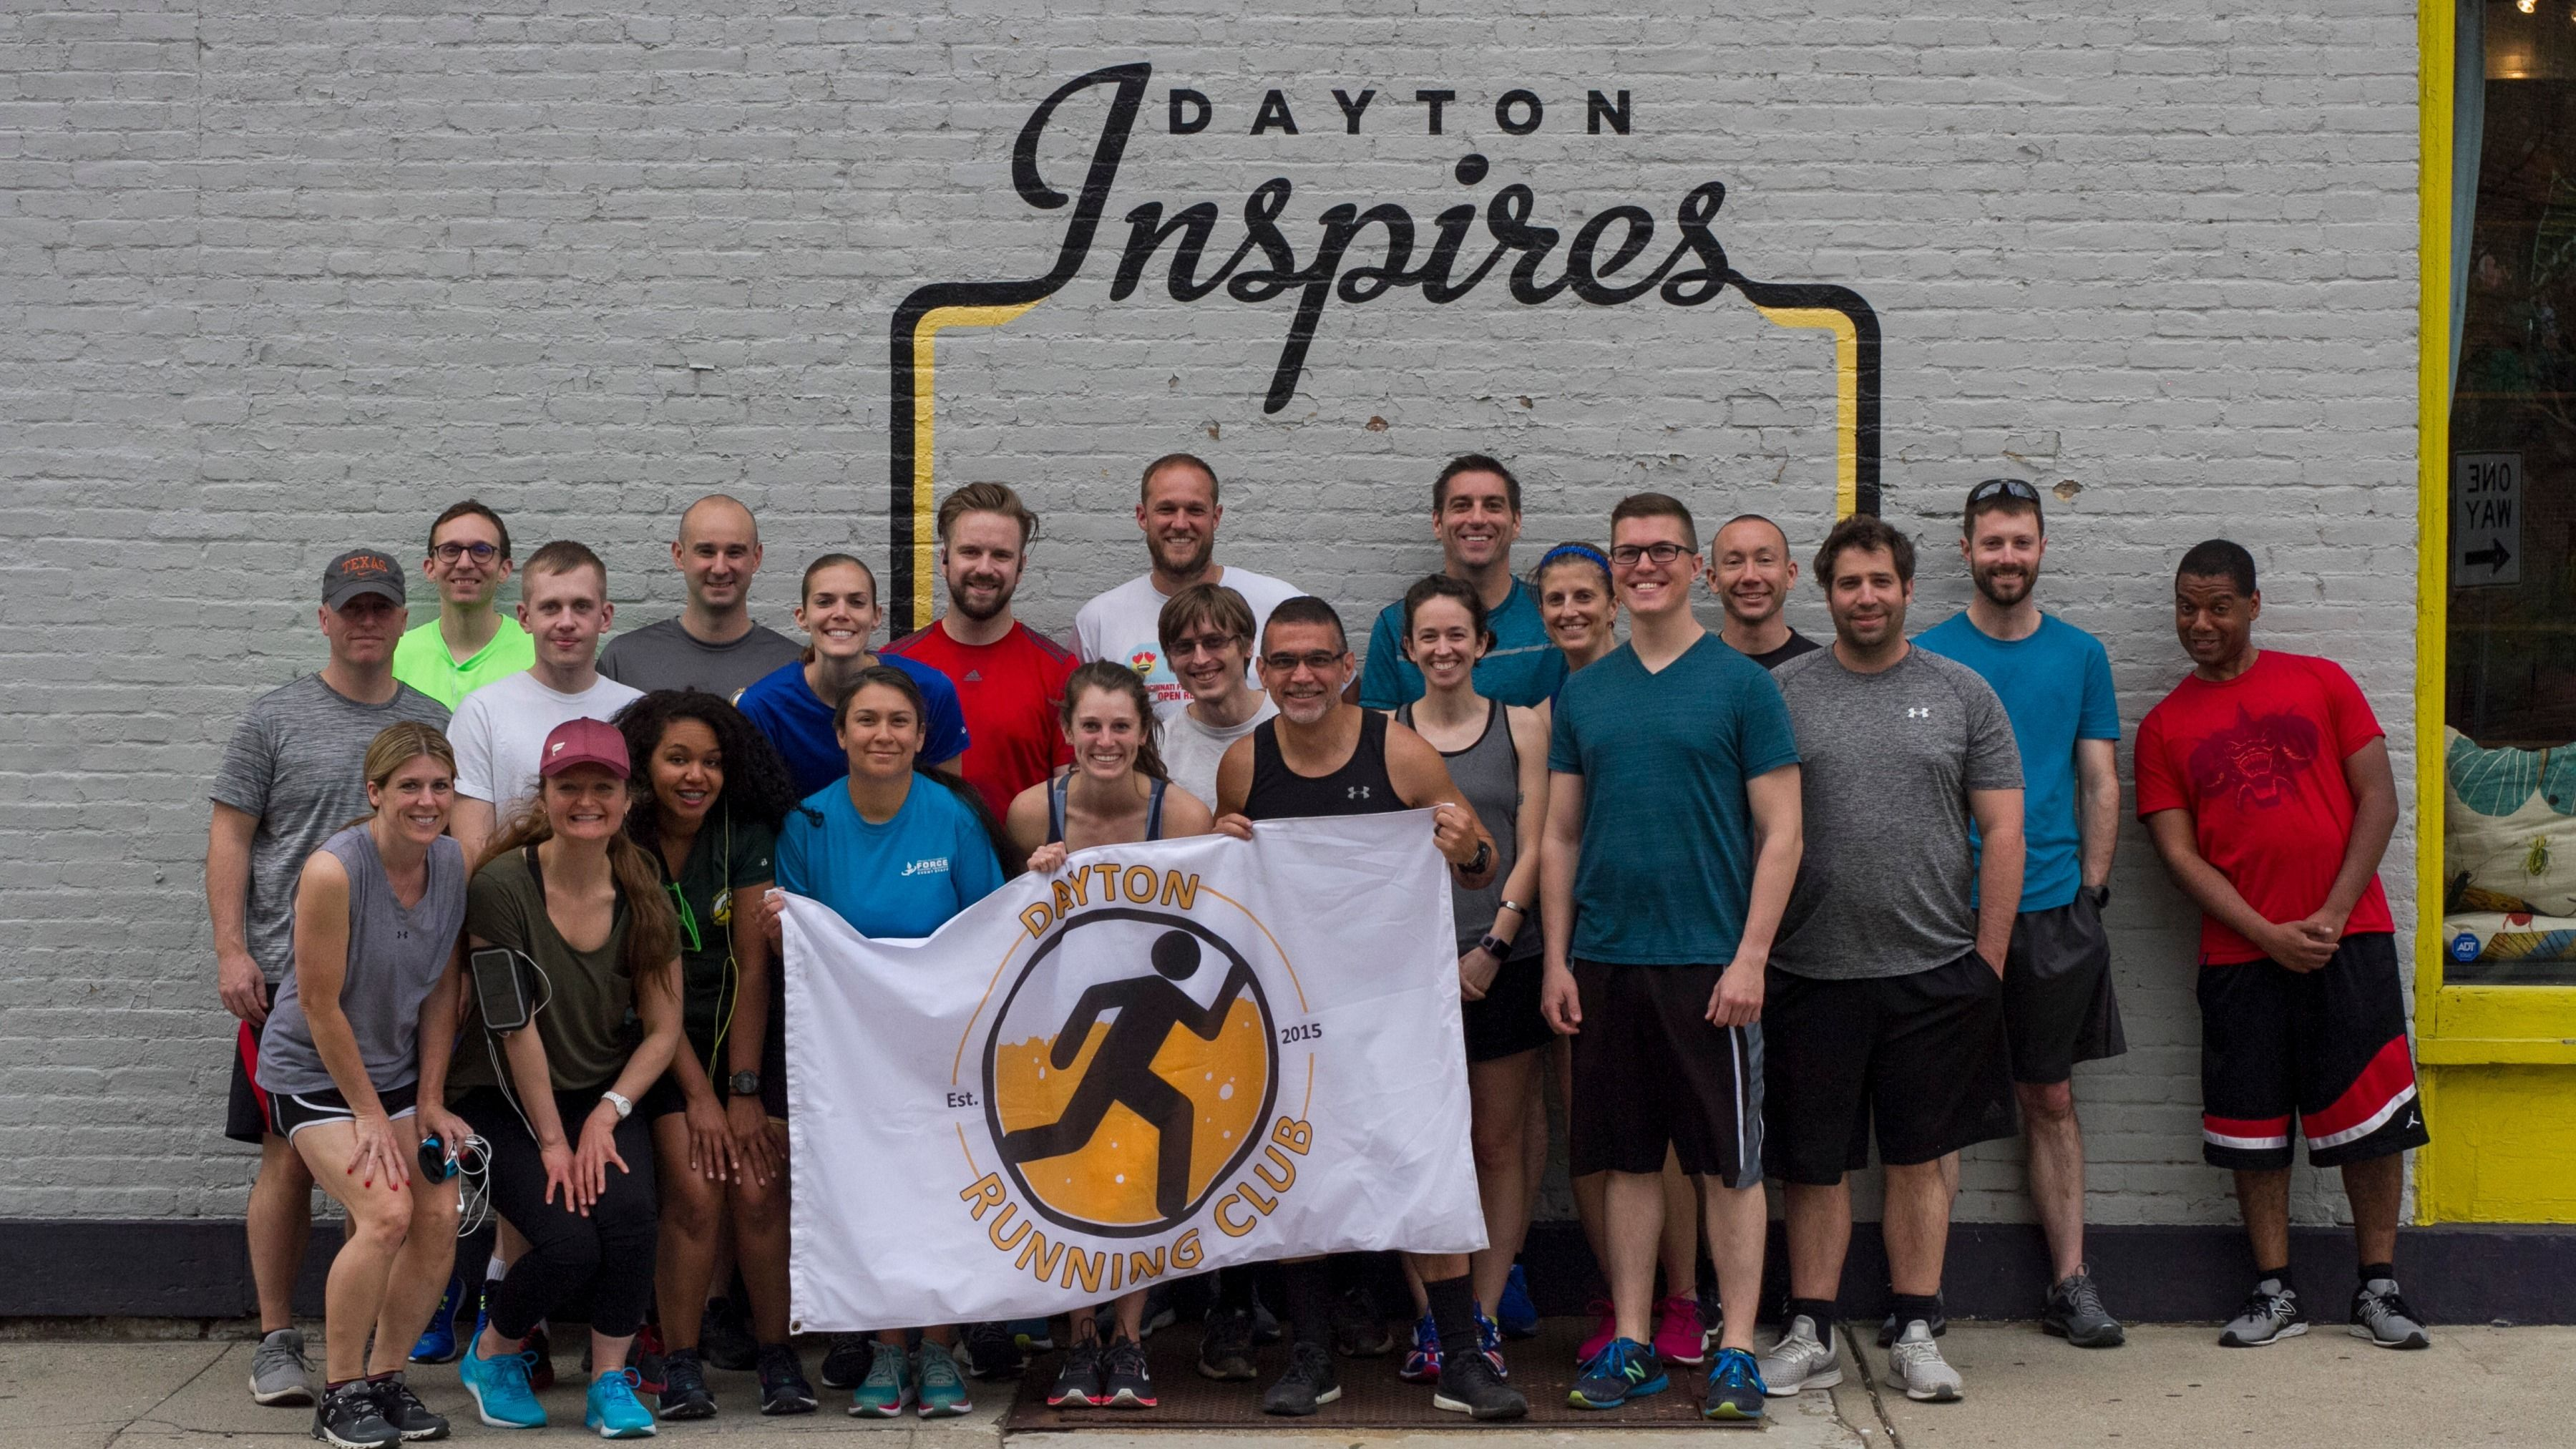 Dayton Running Club